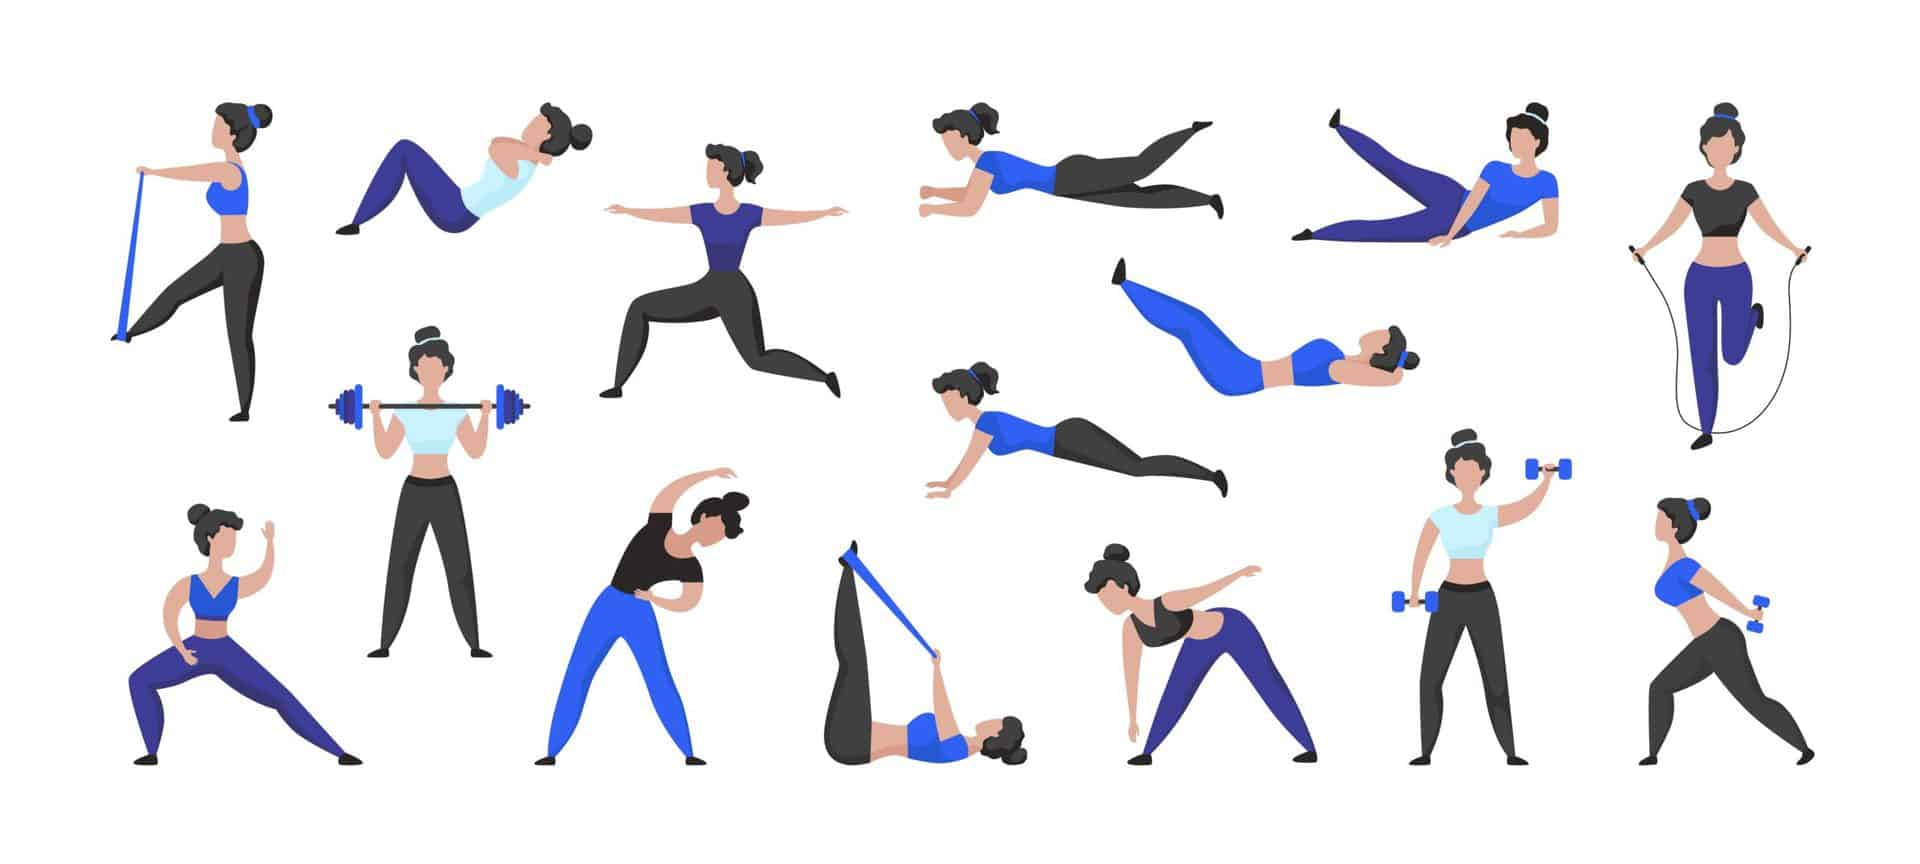 New to Exercise?  Learn 5 Types of Exercise and The Benefits to Your Health